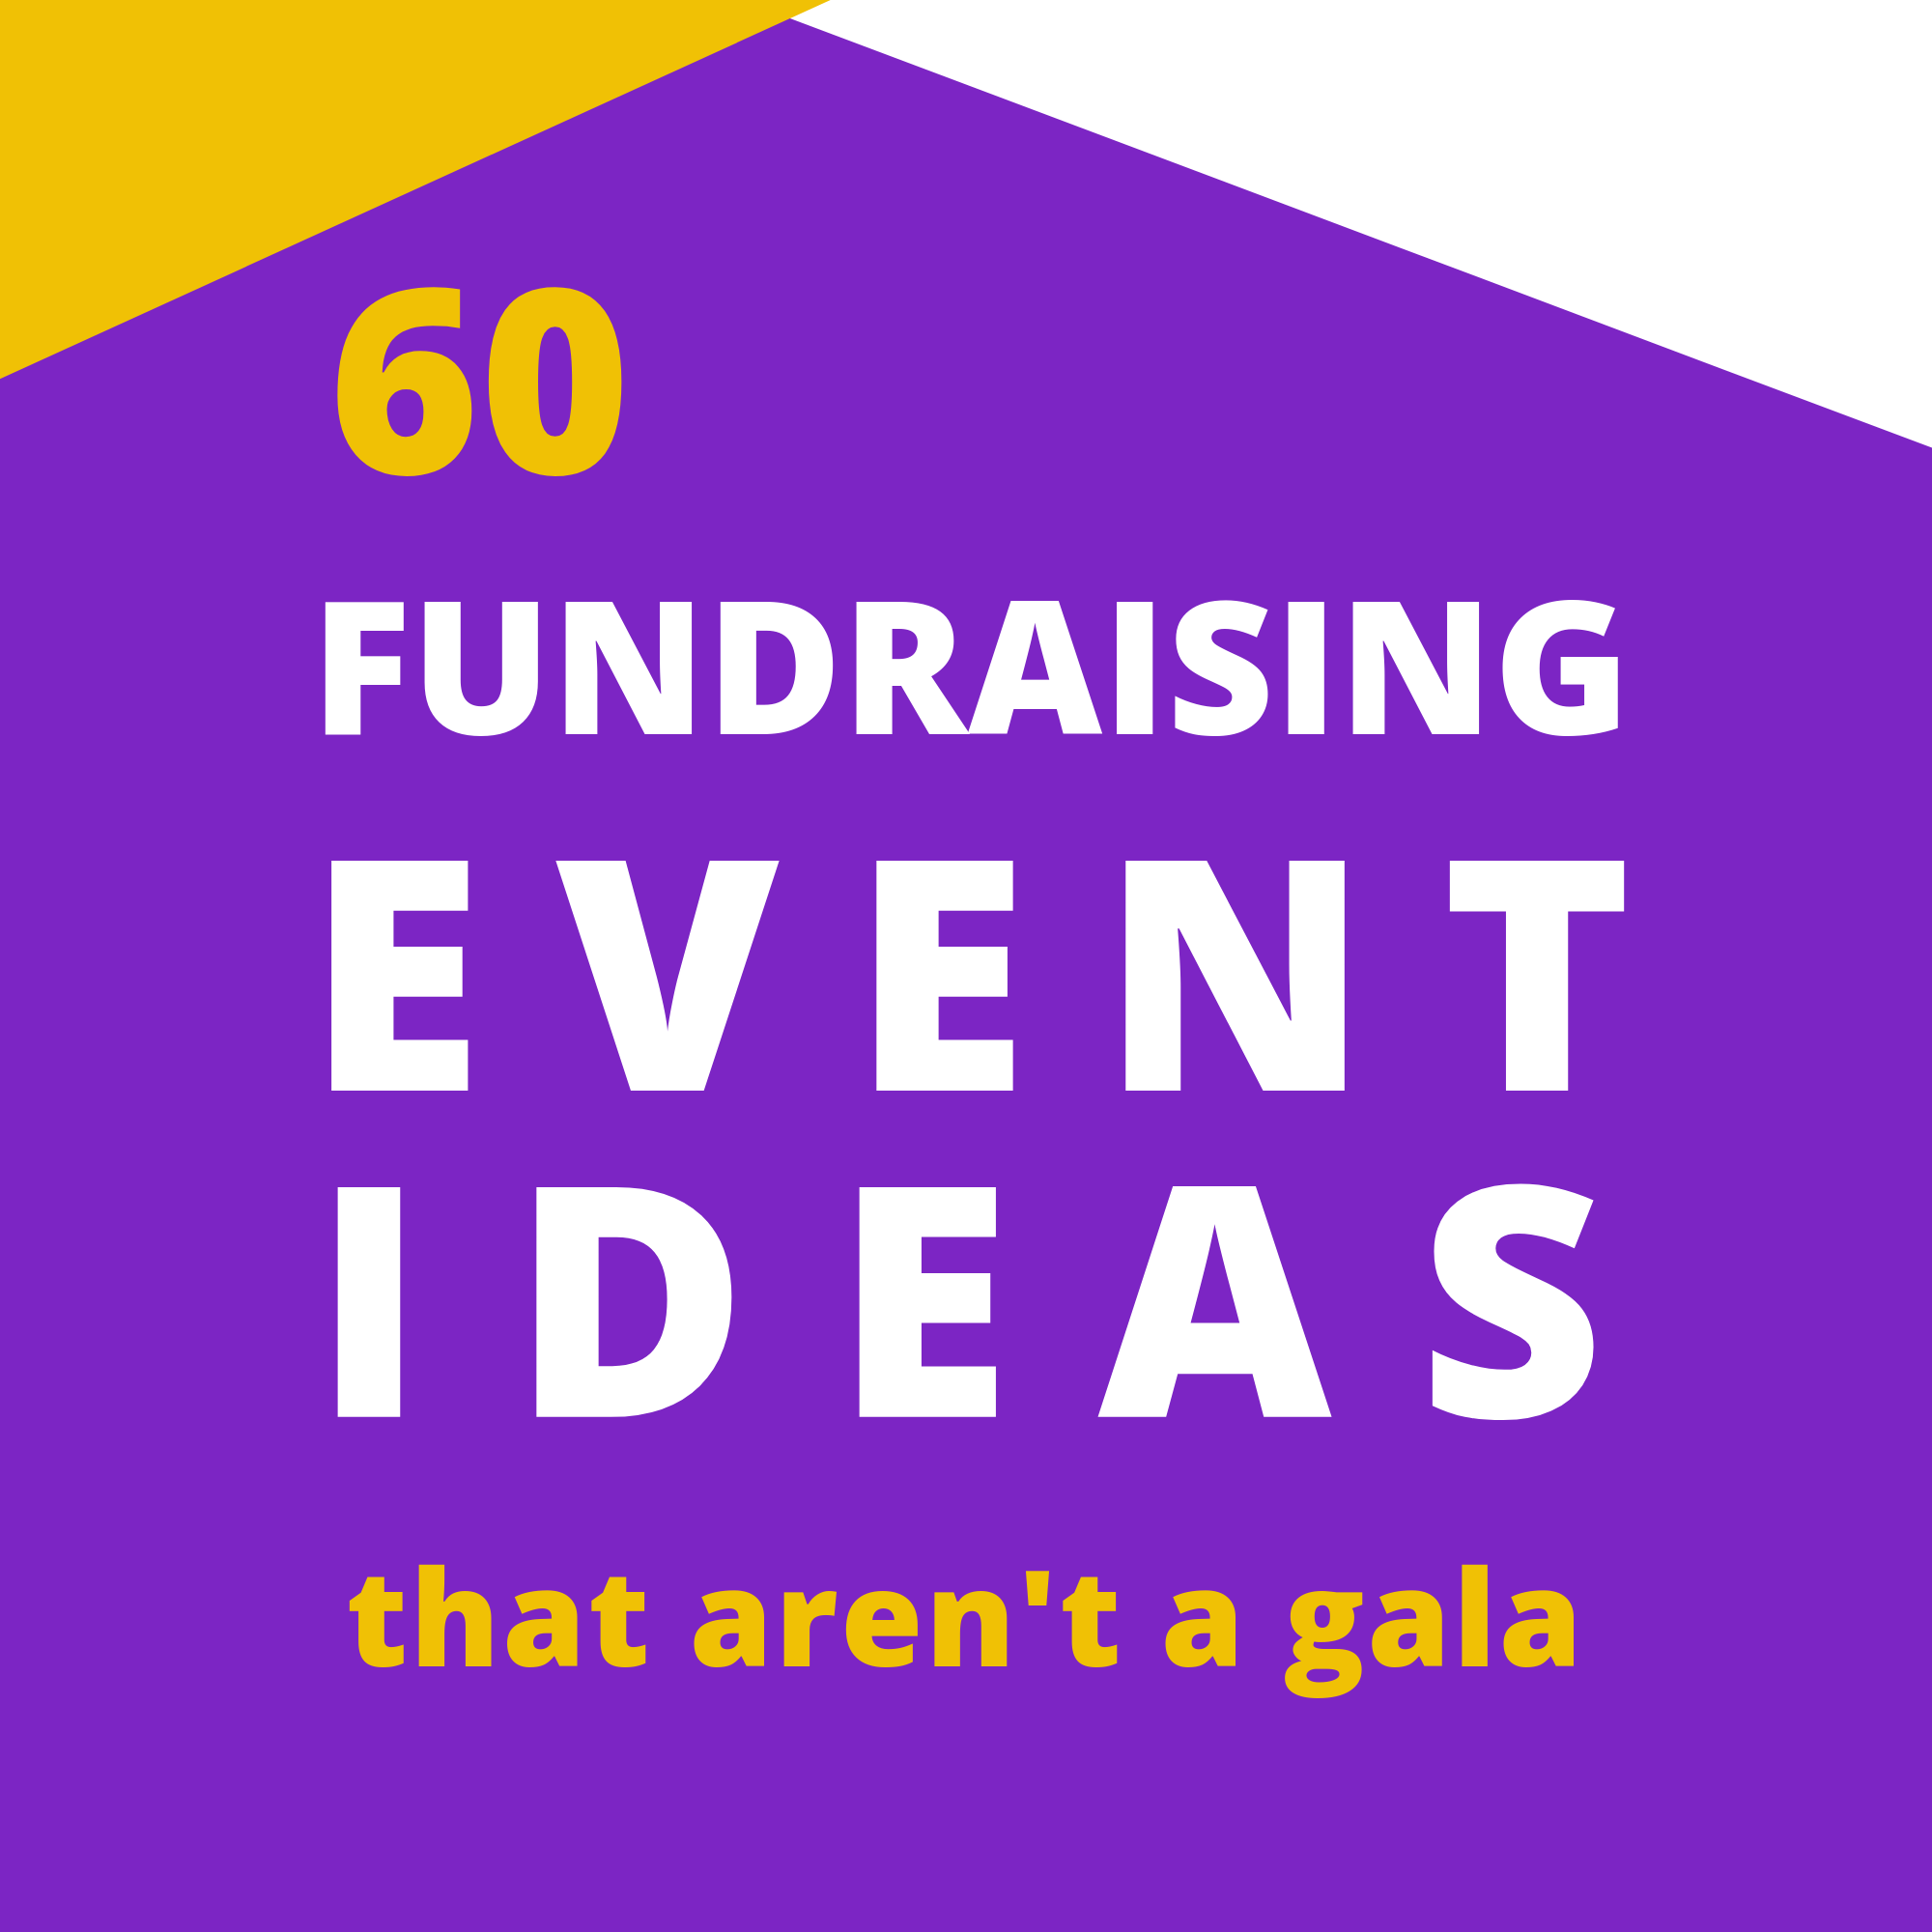 60 fundraising event ideas graphic (2).png